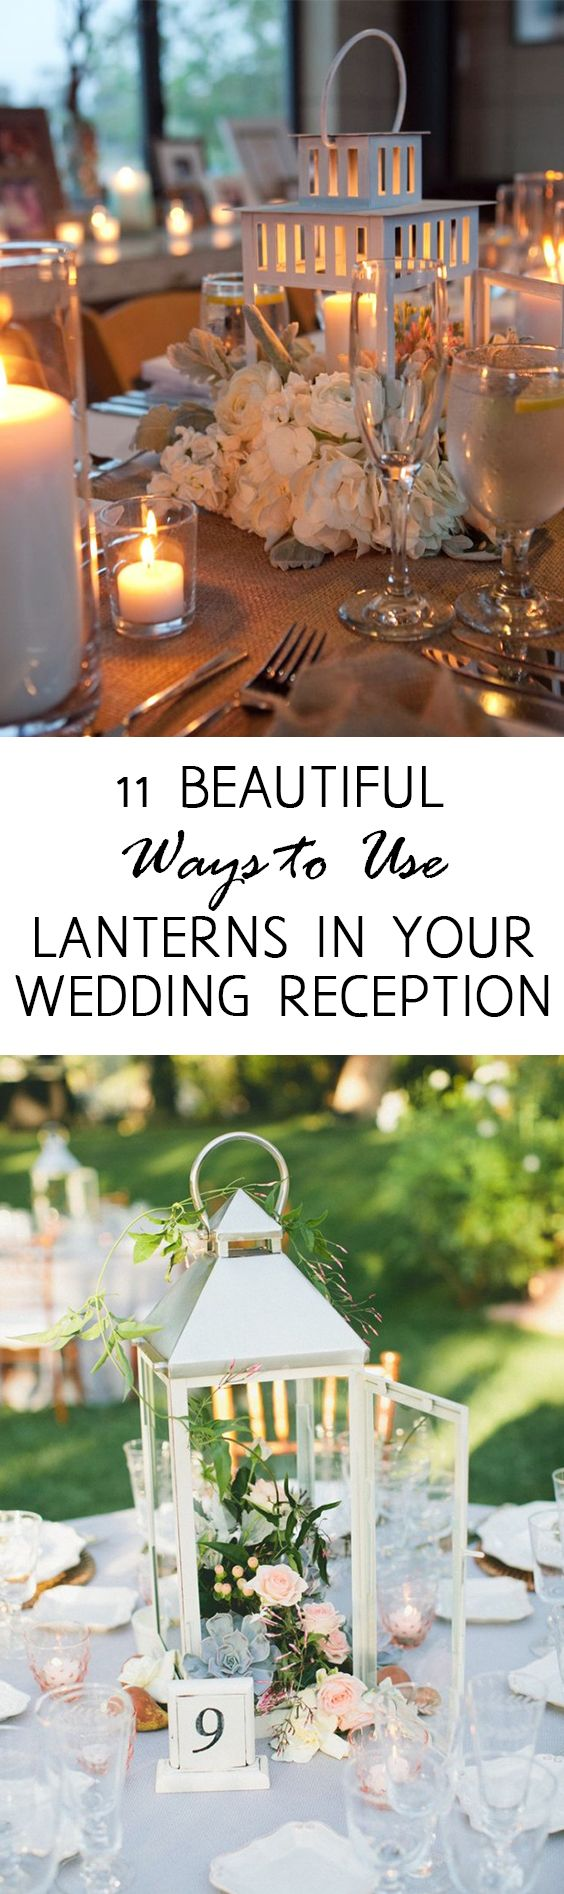 Lanterns, wedding lighting, DIY wedding decor, wedding decor, popular pin, DIY lanterns, DIY wedding lighting, wedding hacks, frugal wedding decor.